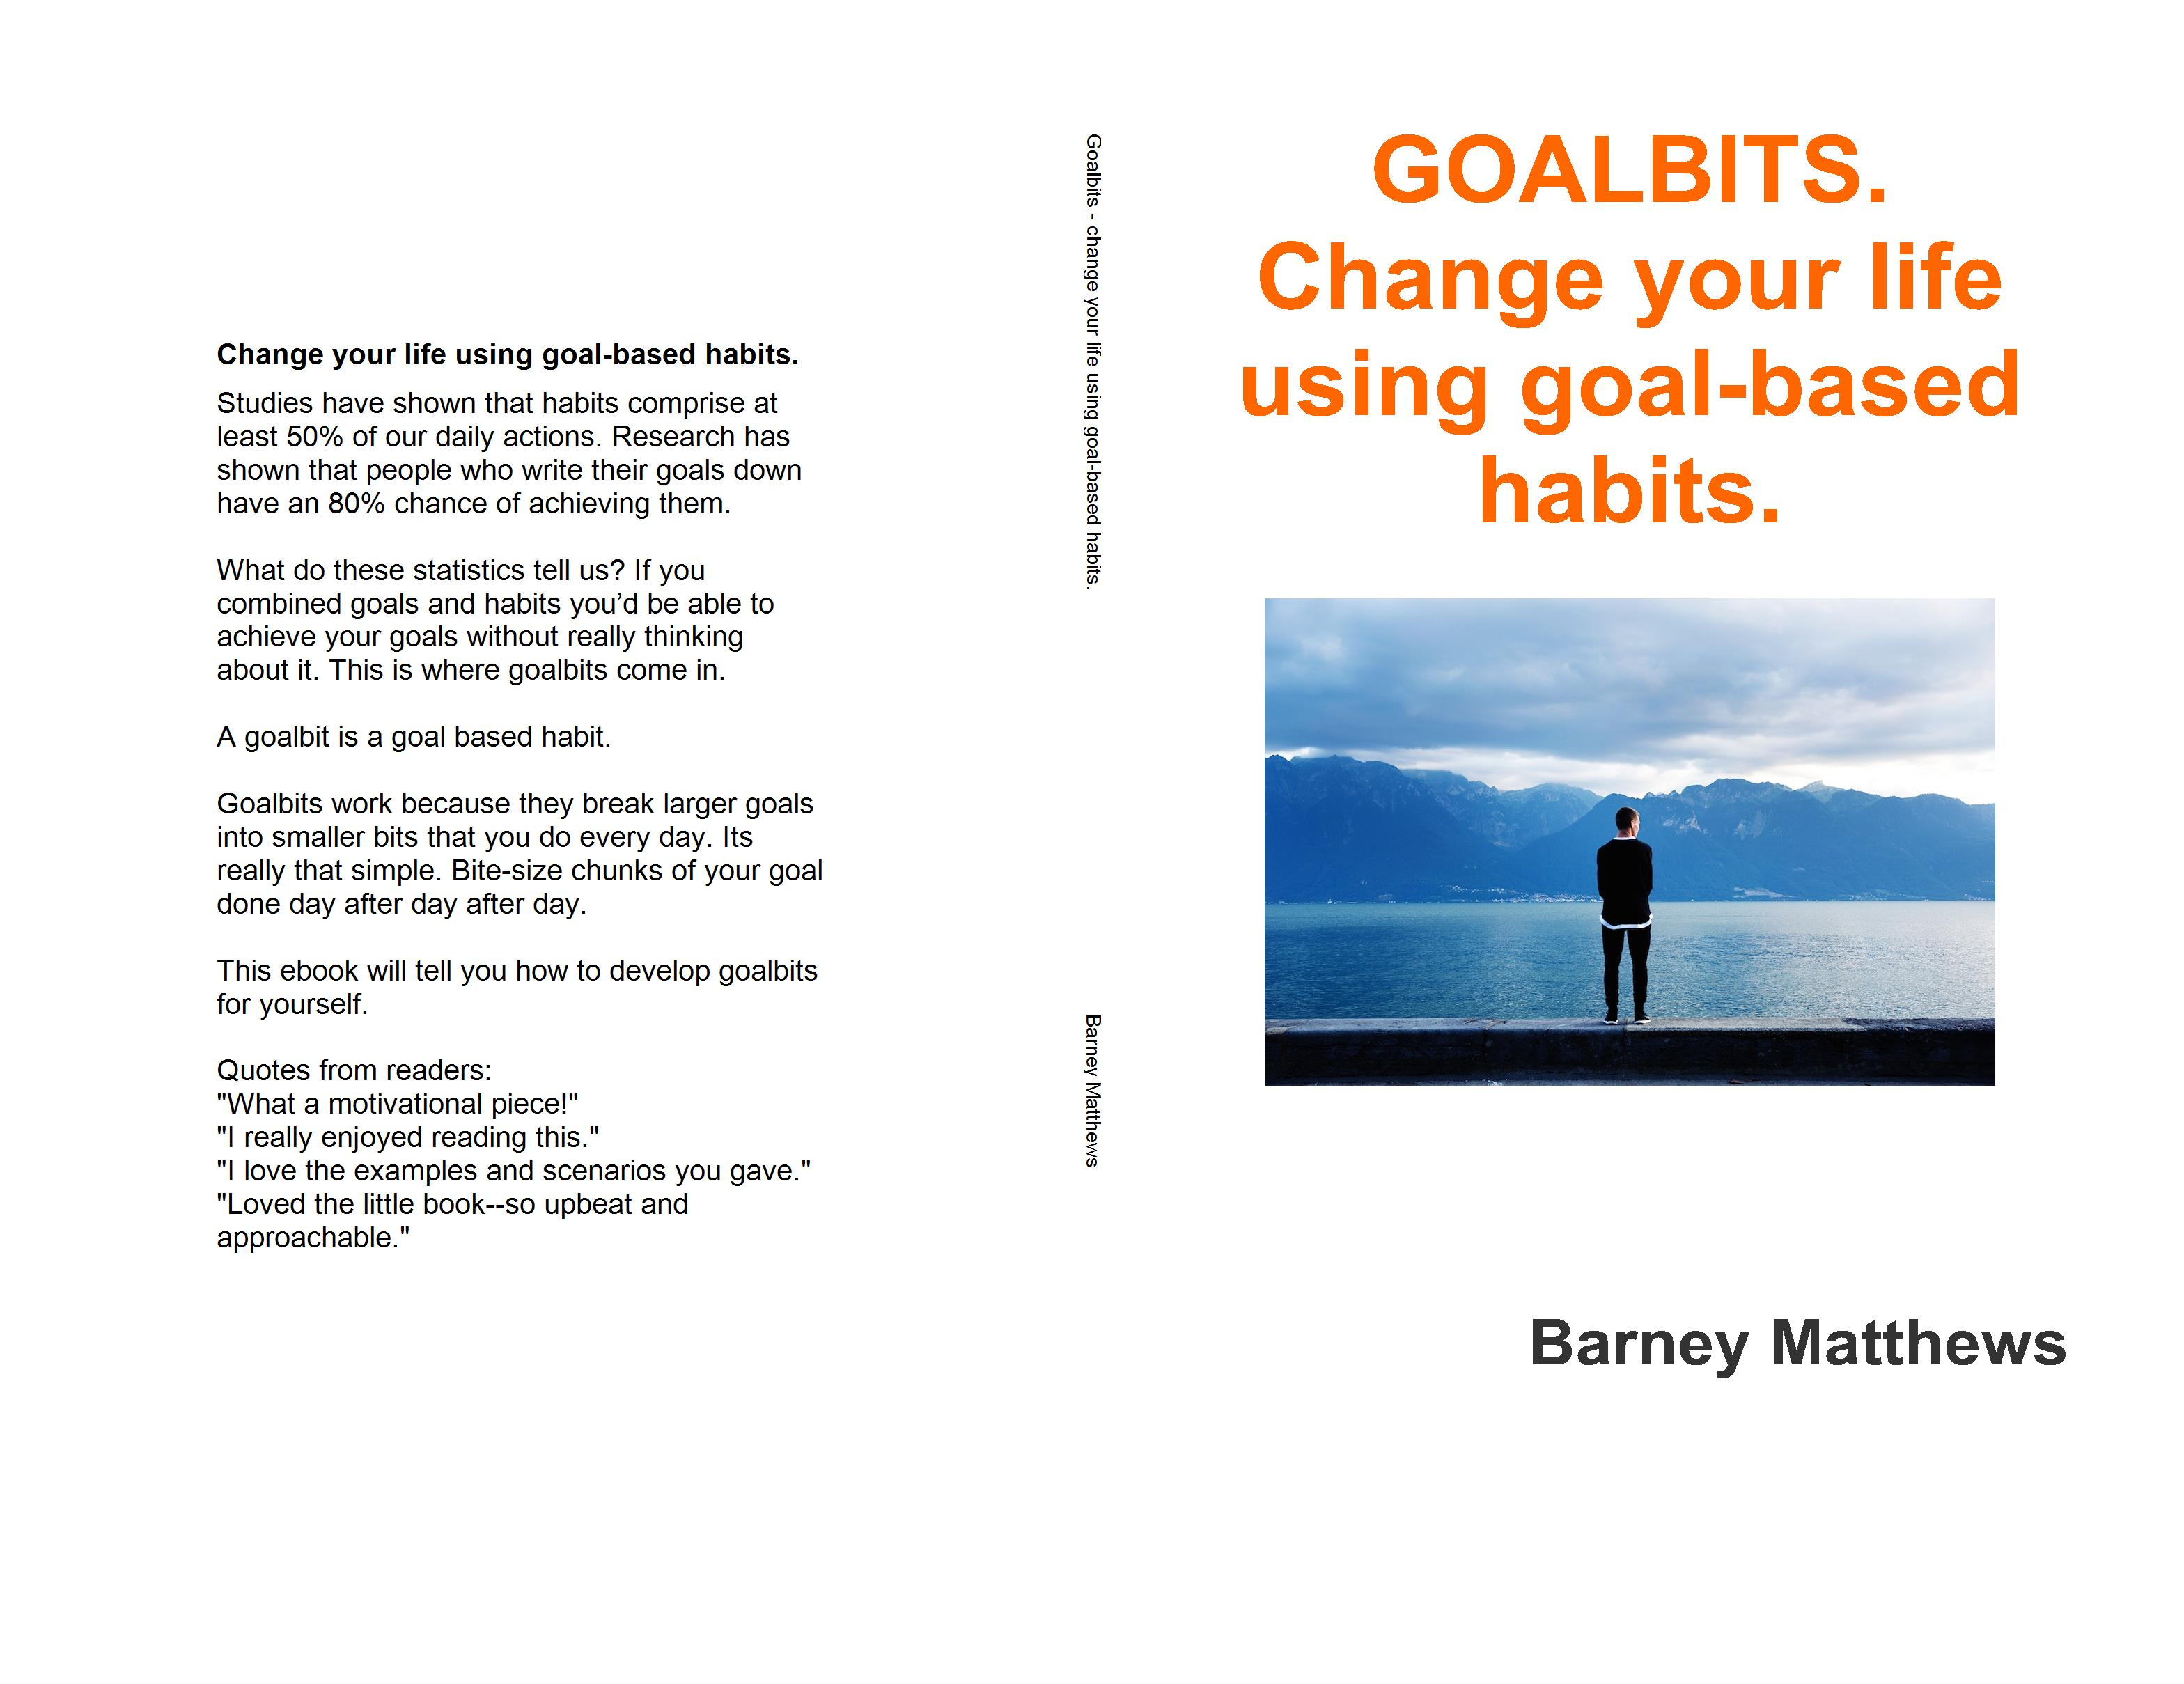 GOALBITS. Change your life using goal-based habits. cover image